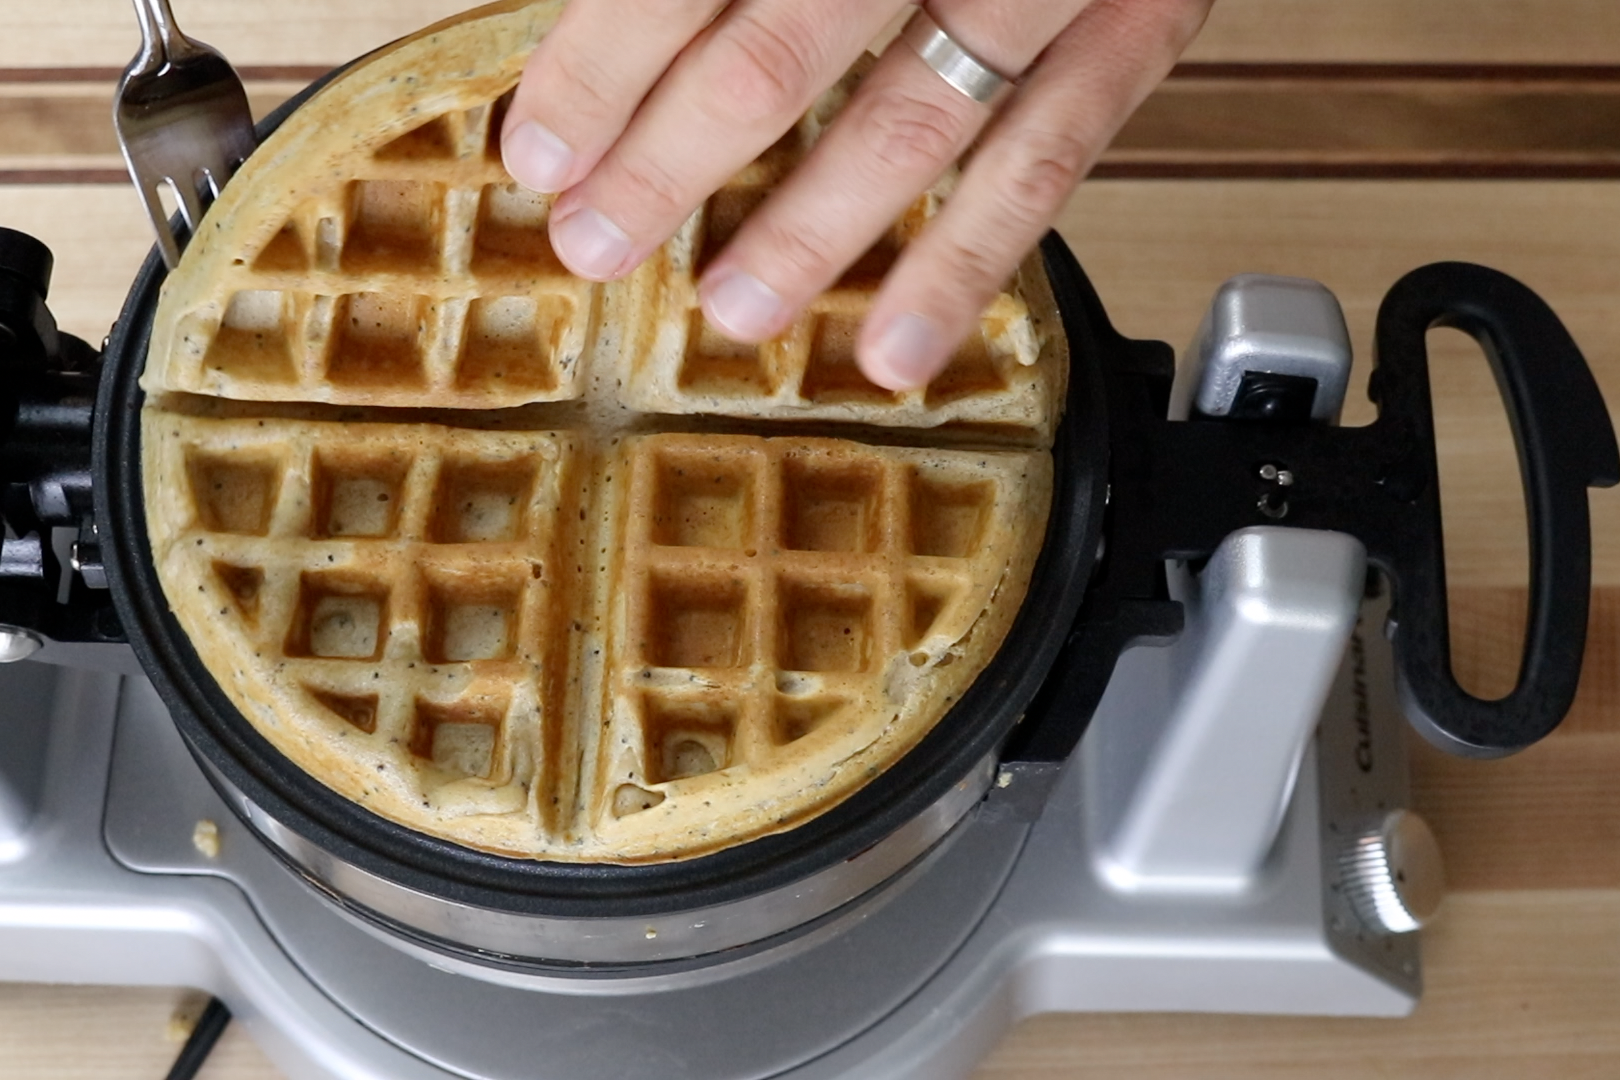 7. Close iron top and cook until the waffle is golden on both sides and is easily removed from iron. About 3-4 minutes depending on the waffle maker. -